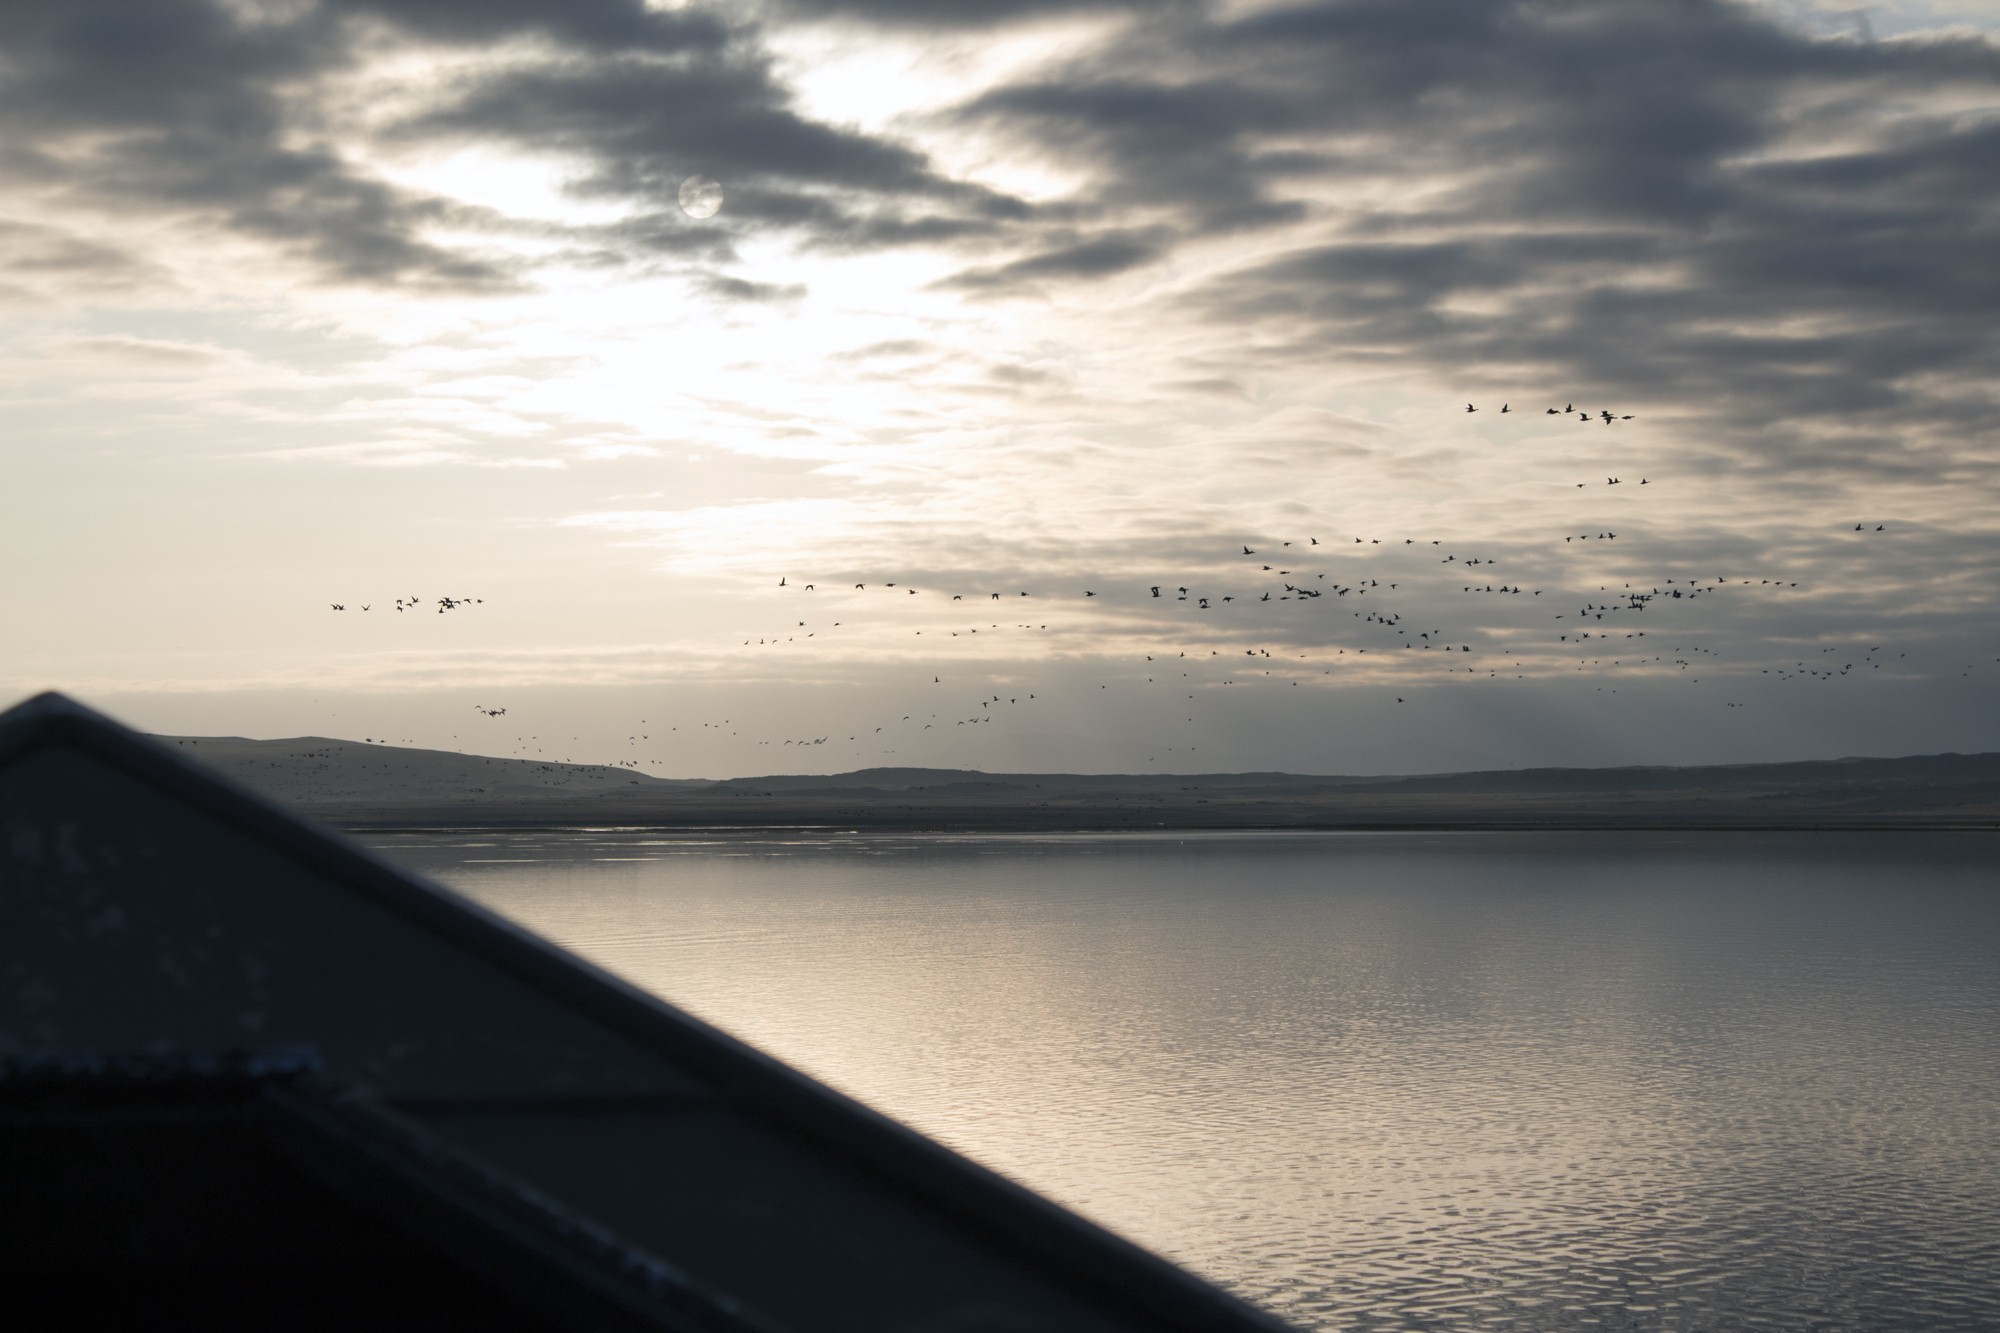 sunrise featuring brant in the distance flying over a body of water, photo taken from a boat, bow is visible